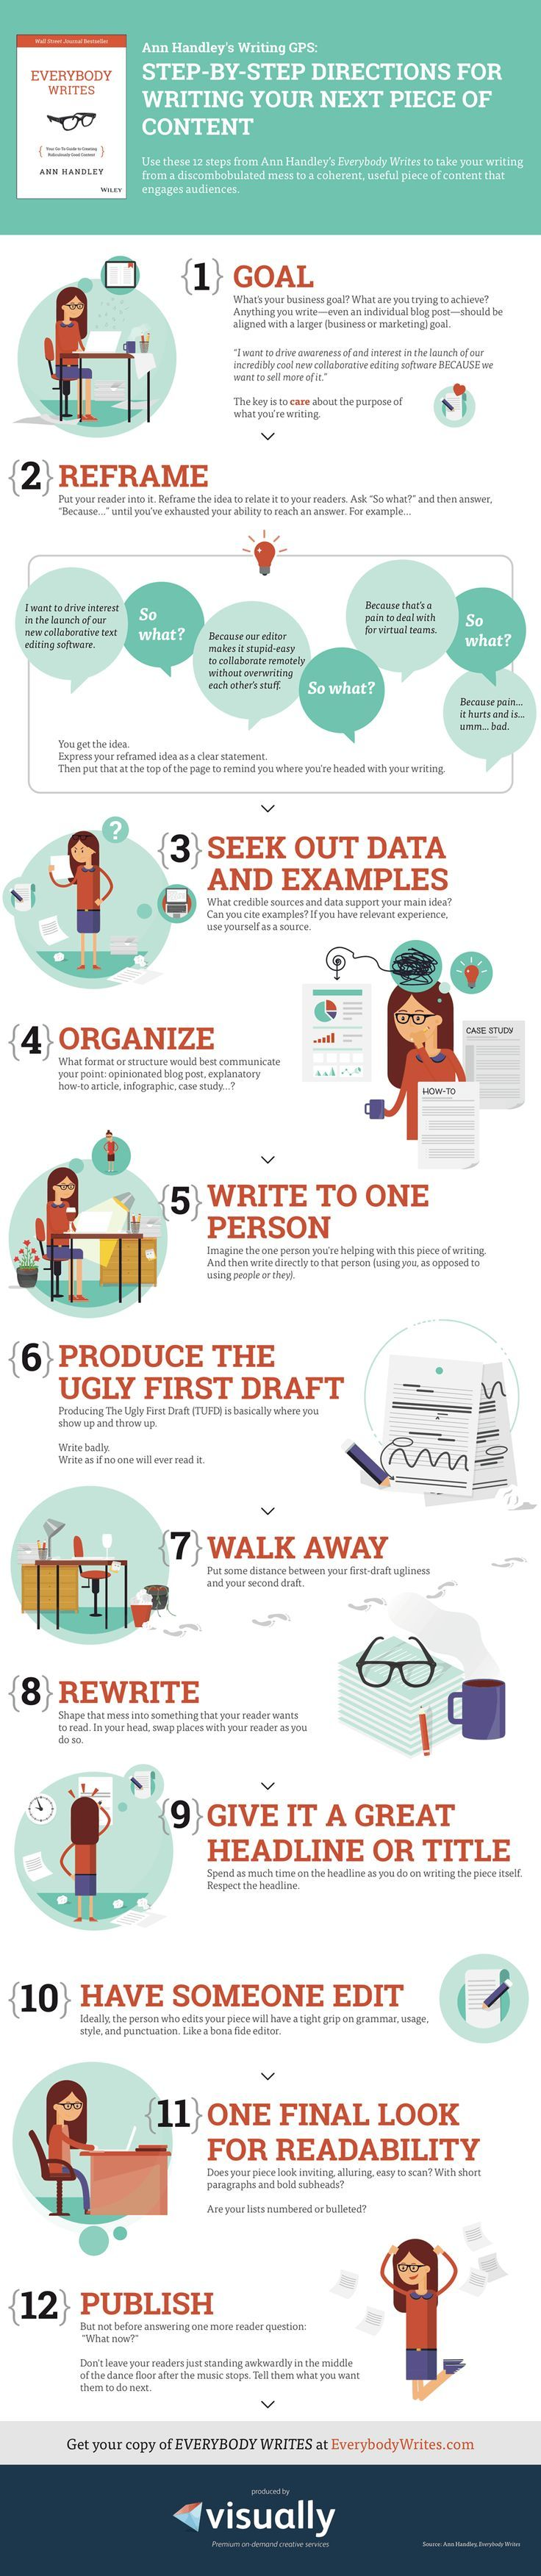 A Writing GPS: The step-by-step guide to creating your next piece of content by (Ann Handley) @MarketingProfs #Infographic